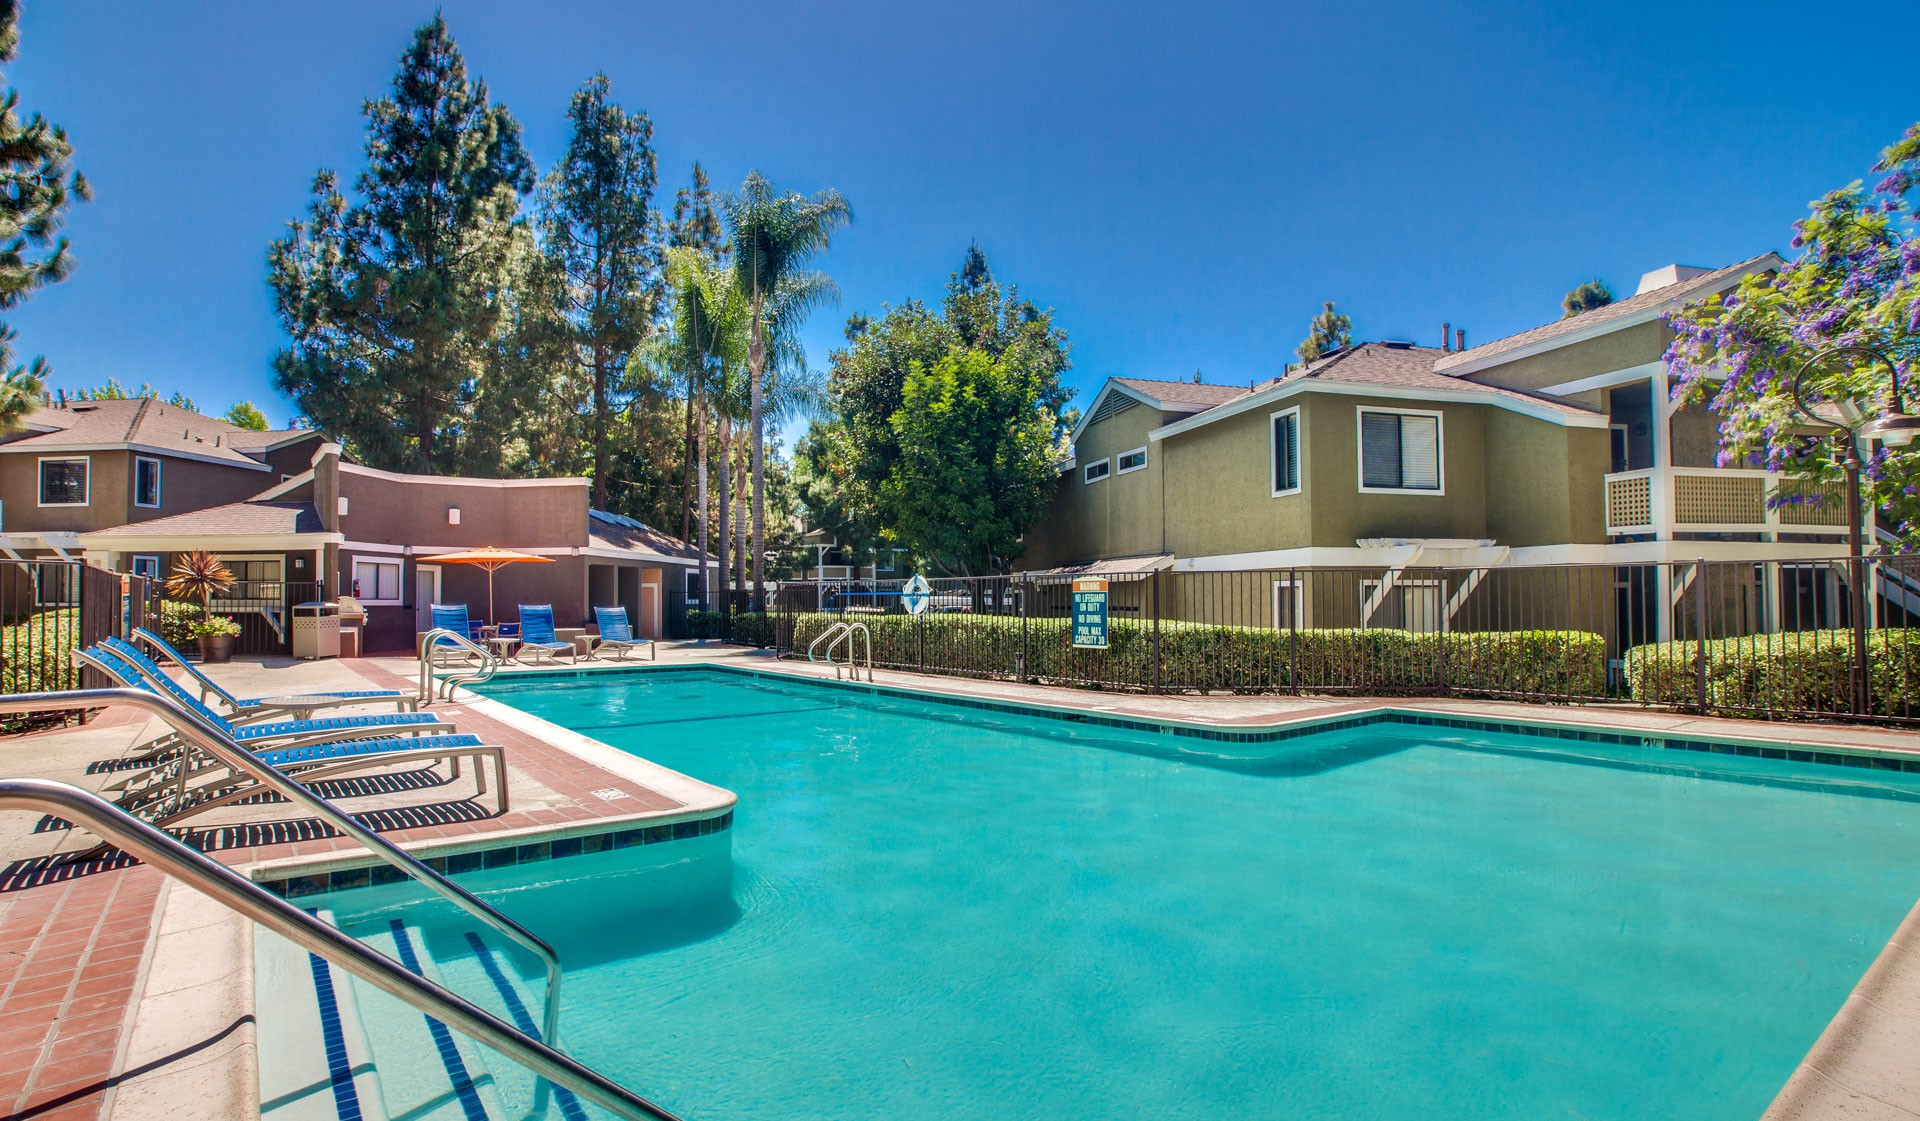 Apartments Near MiraCosta Island Club Apartments for Mira Costa College Students in Oceanside, CA